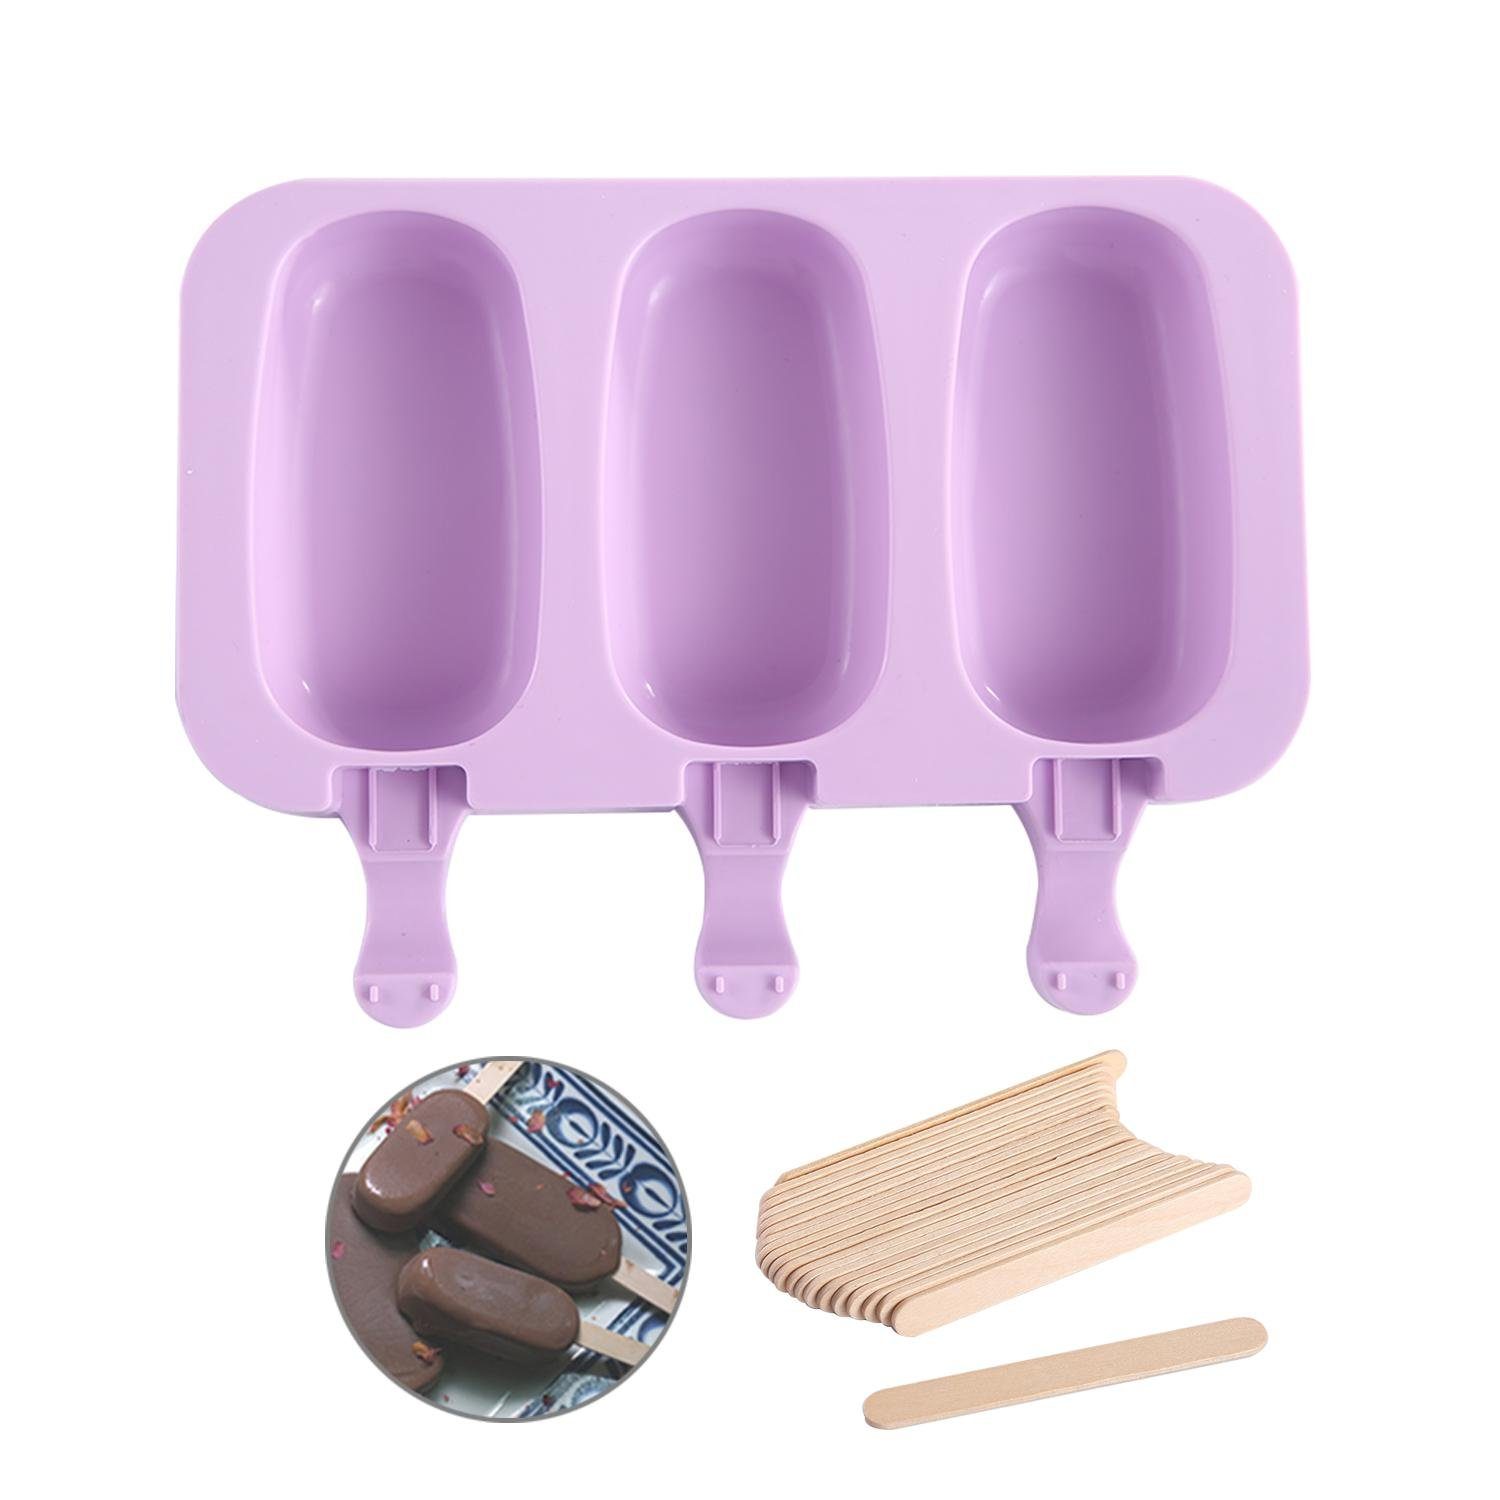 Aolvo Silicone Popsicle Molds, Easy Mini Ice Cream Maker with Wooden Sticks Homemade Cake Backing Molds BPA Free for Girls Boys and Adults,Light Purple